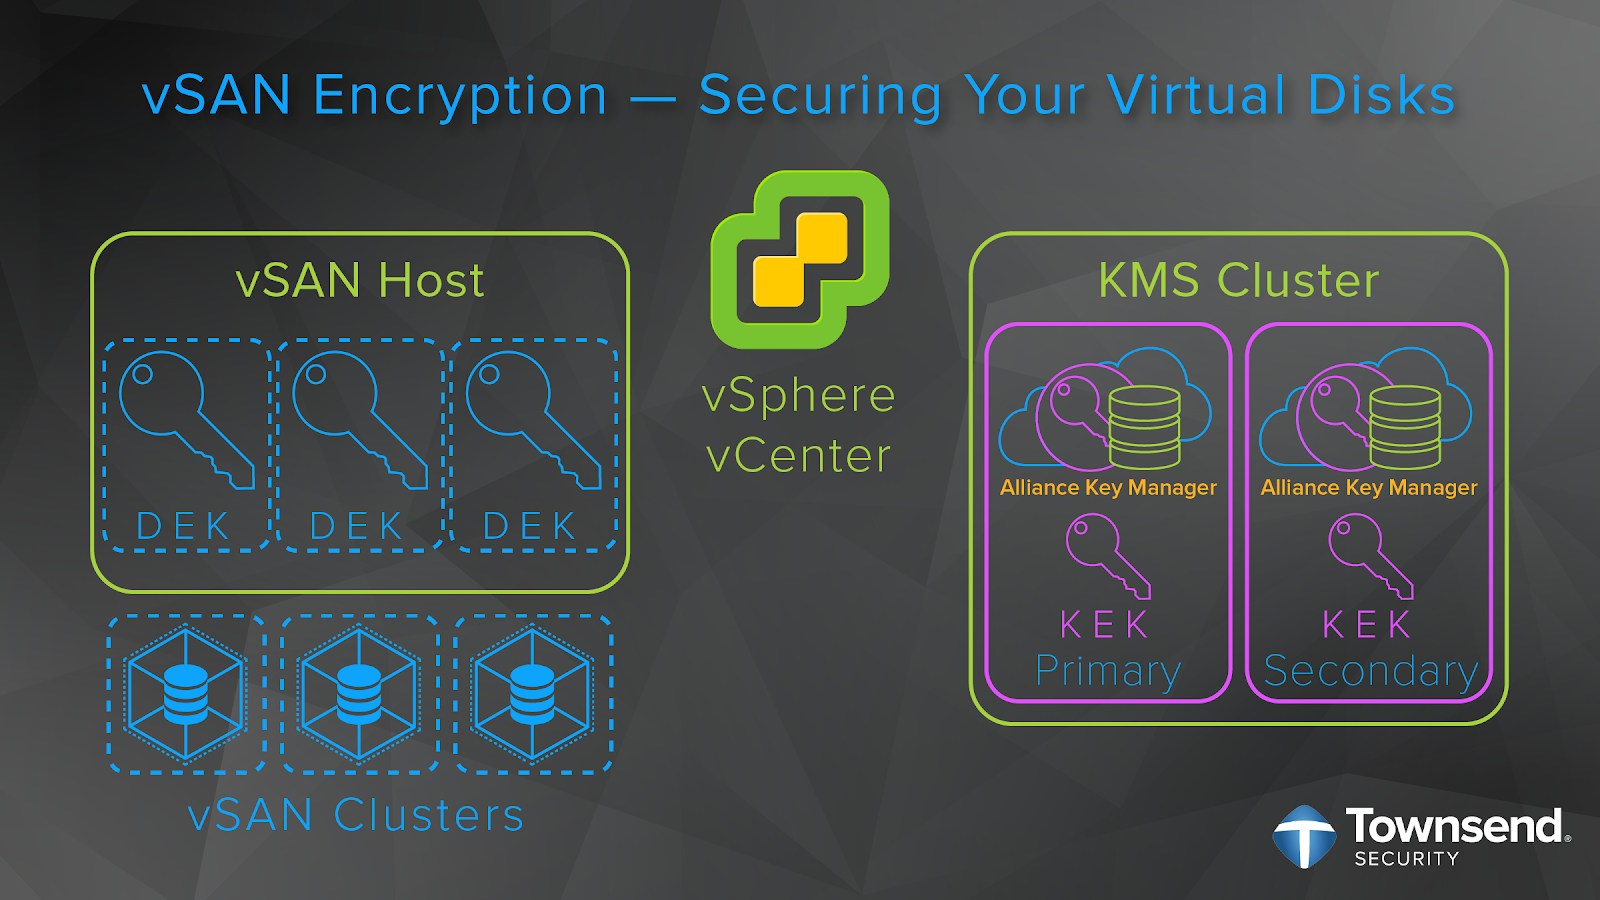 How vSAN Encryption Works